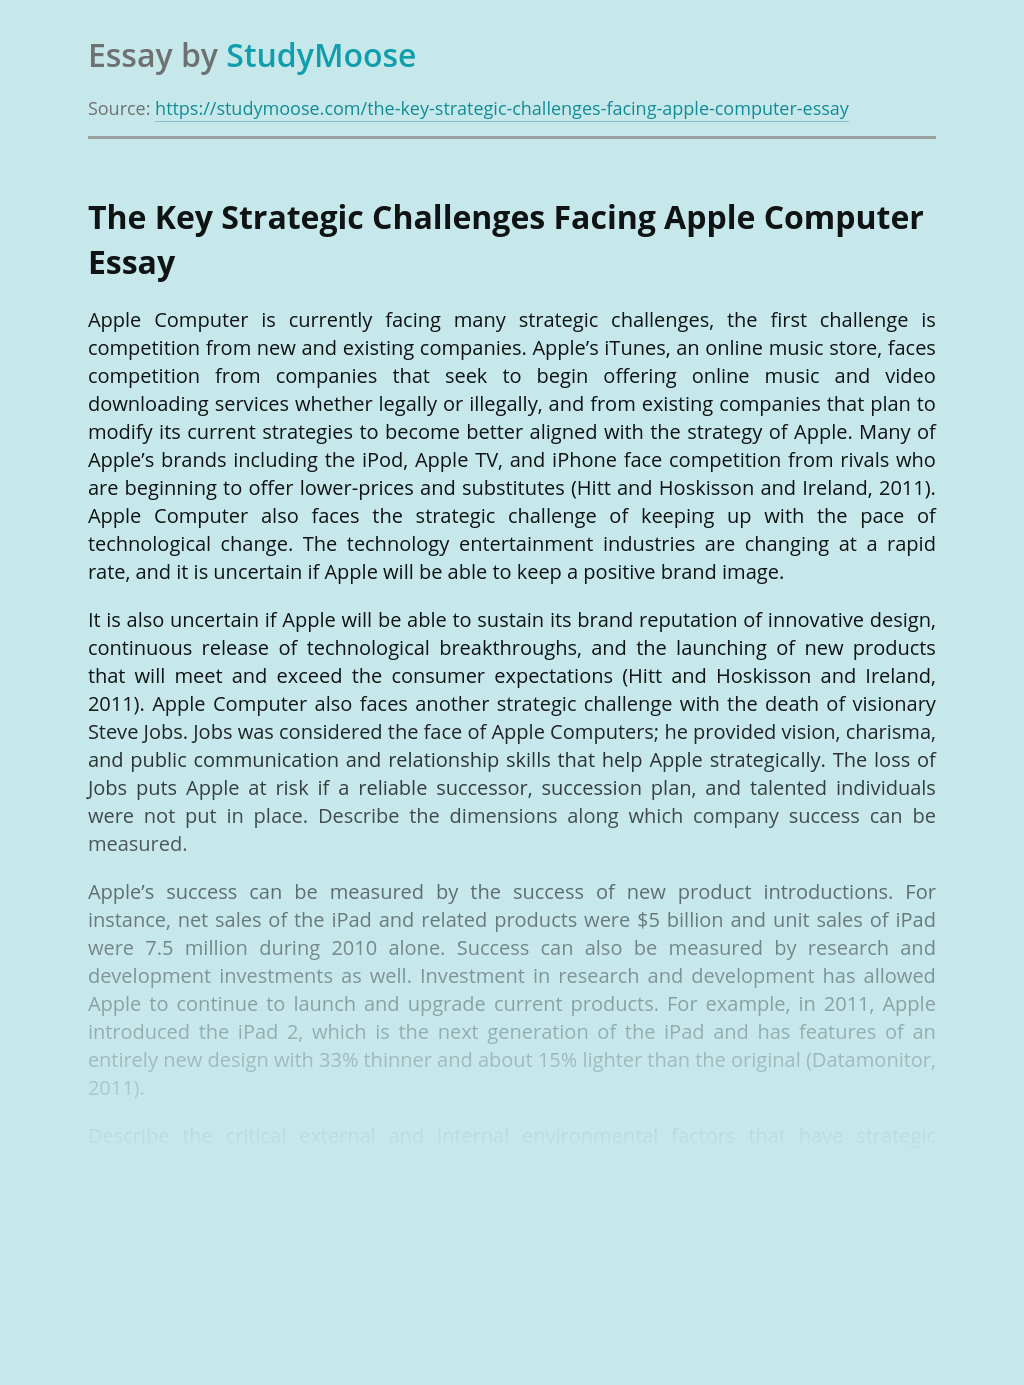 The Key Strategic Challenges Facing Apple Computer